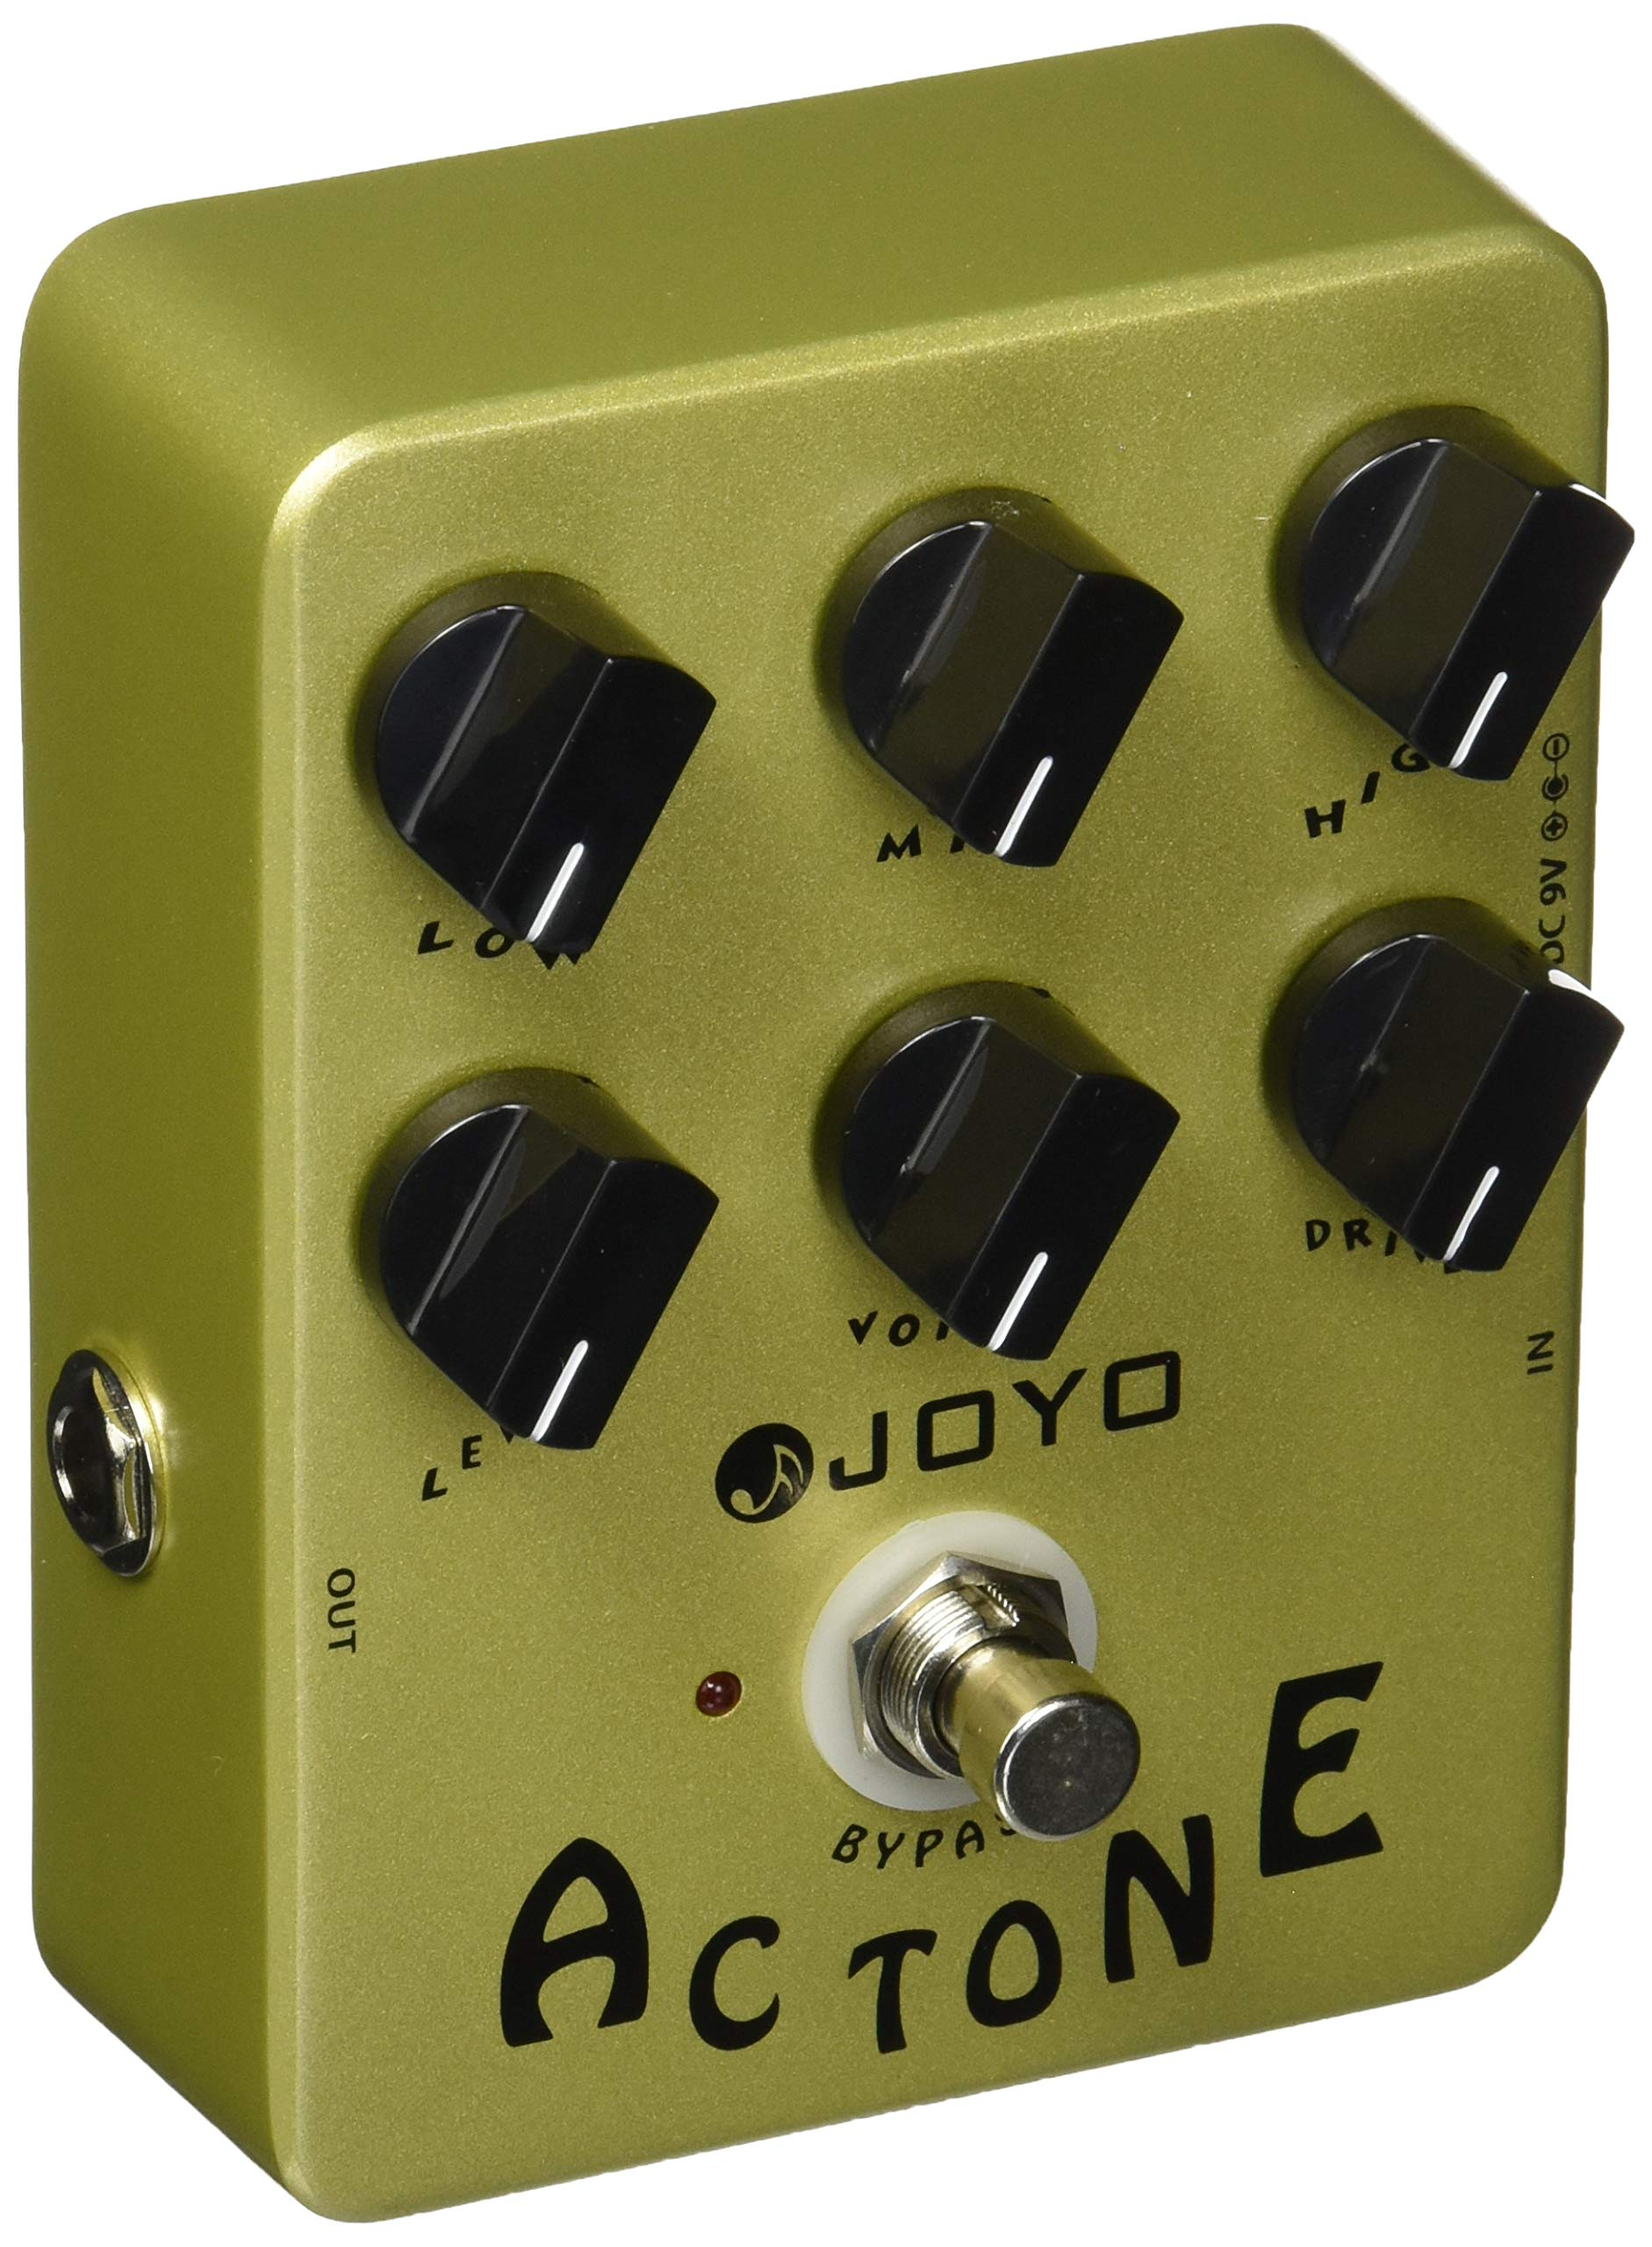 Joyo JF-13 AC Tone Vintage Tube Amplifier effects pedal, analog circuit and bypass